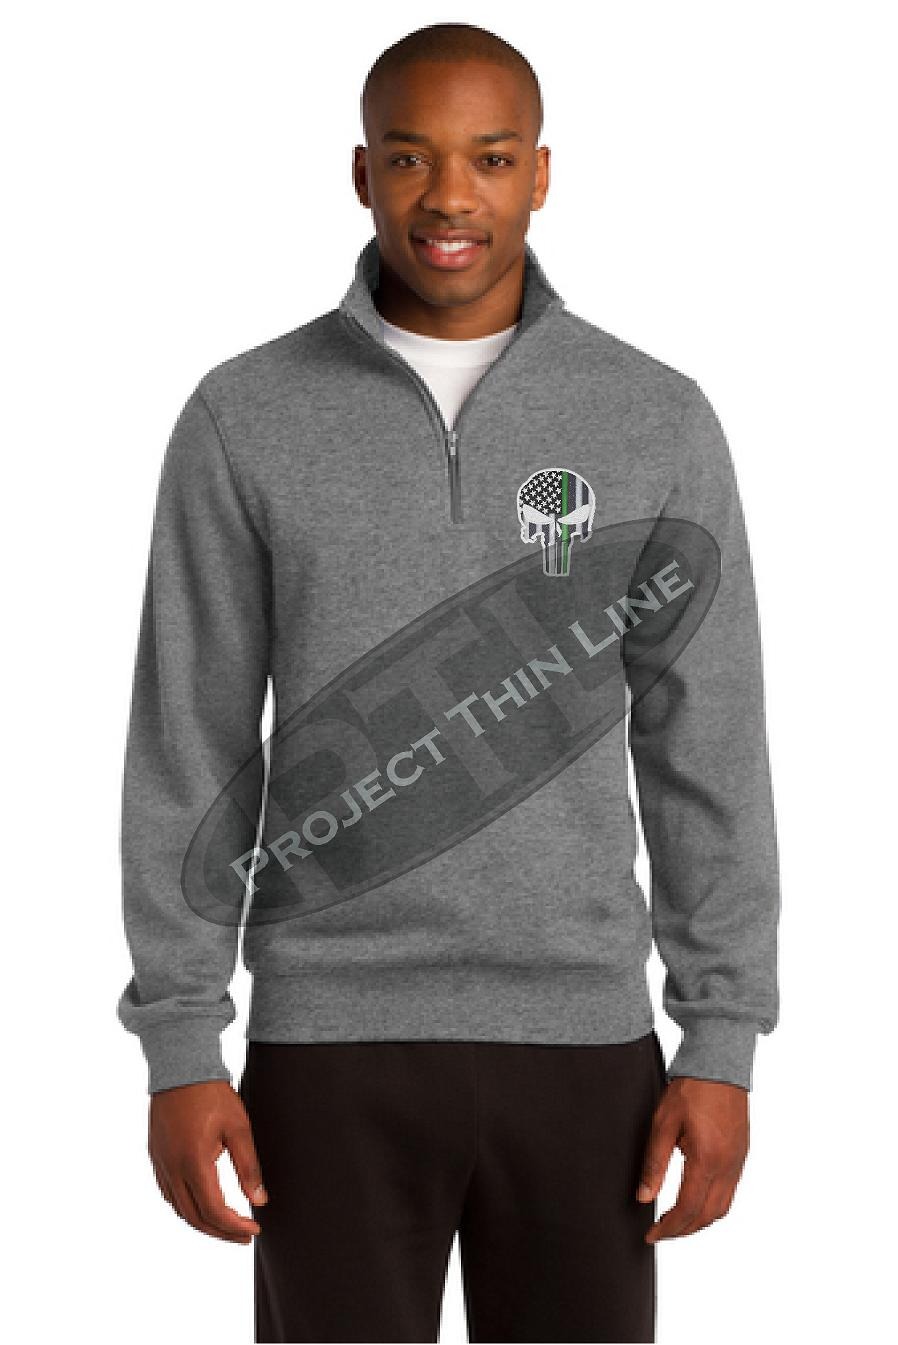 Grey Thin Green Line Skull Punisher 1/4 Zip Fleece Sweatshirt